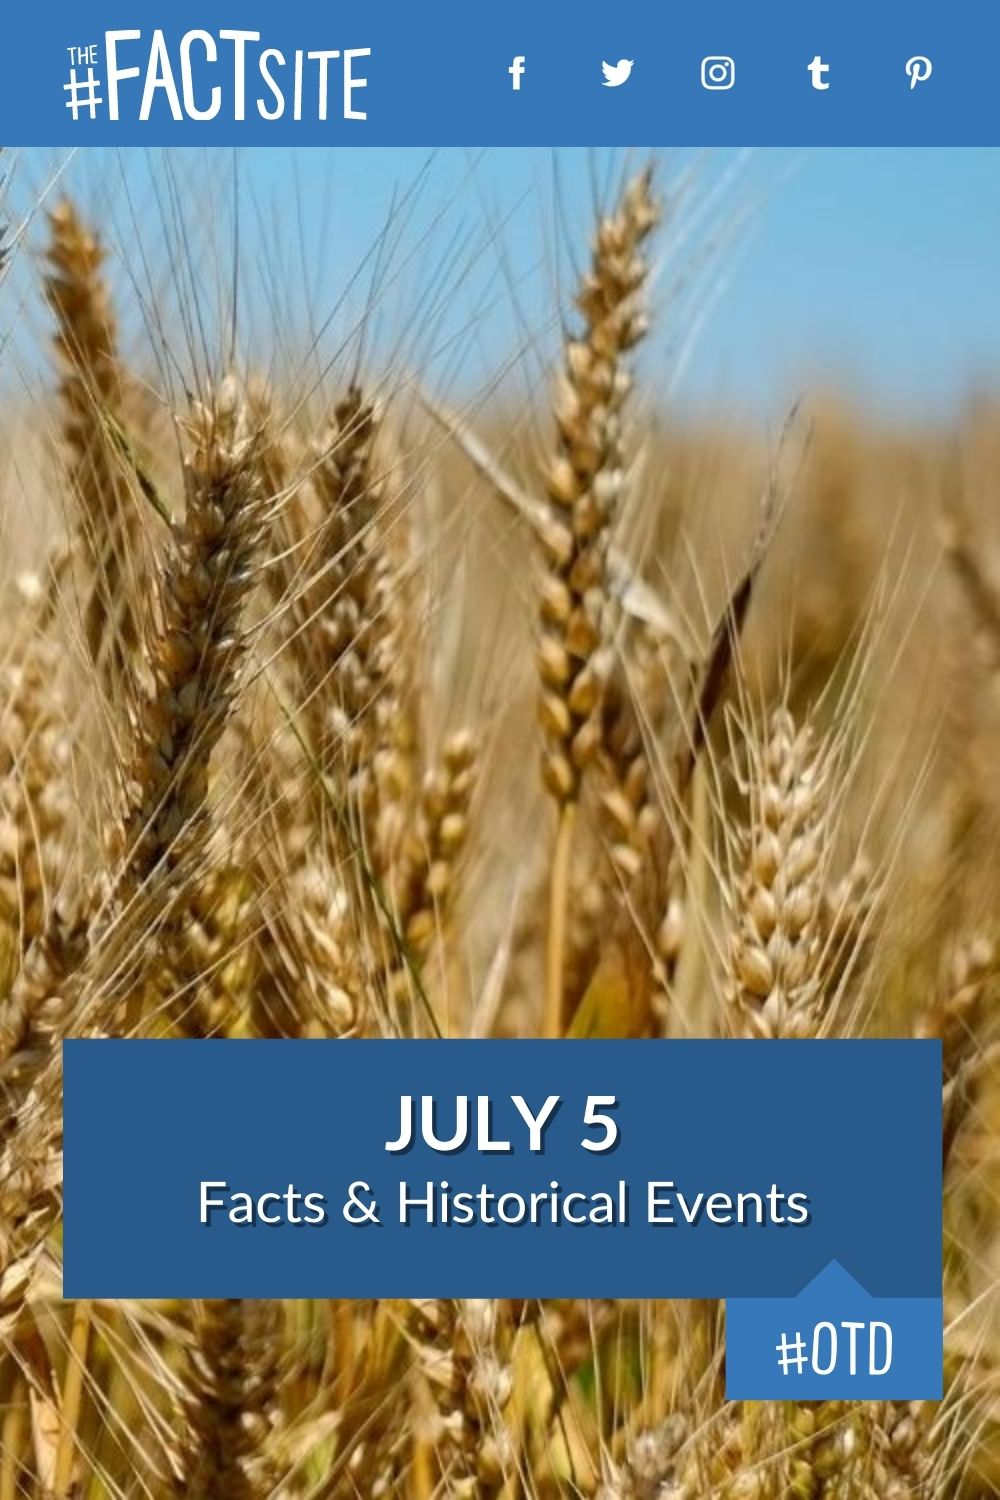 Facts & Historic Events That Happened on July 5